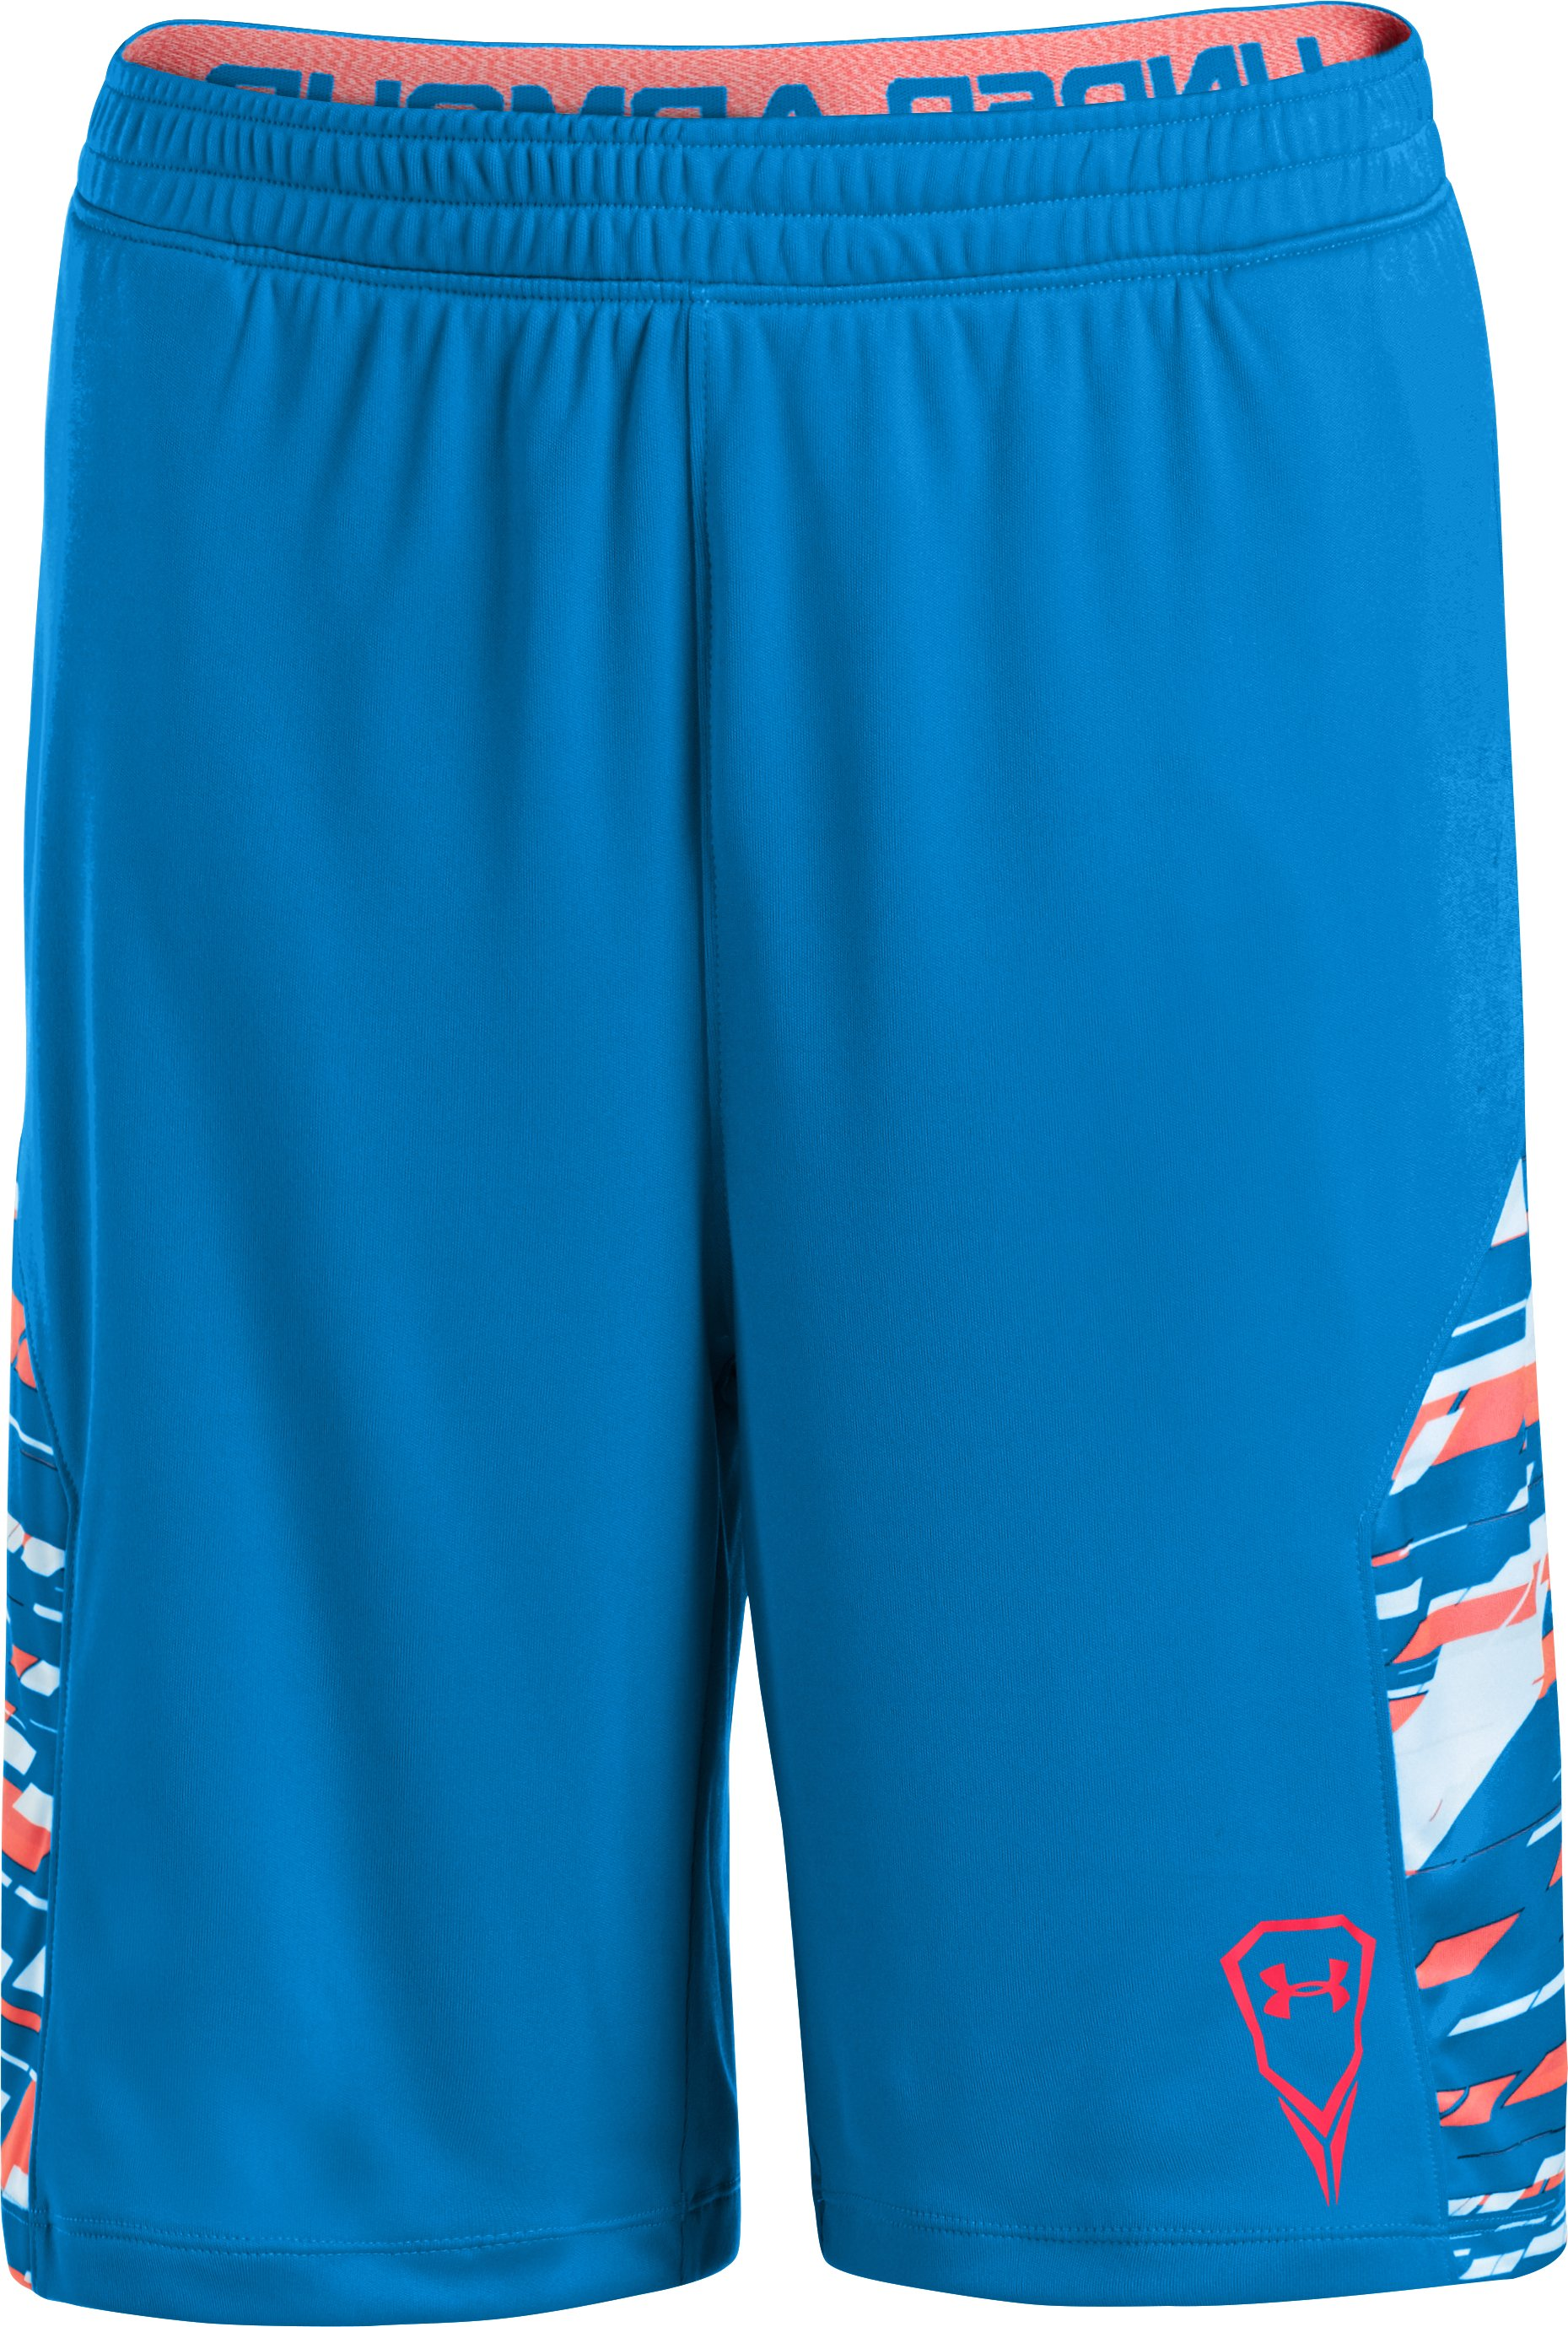 Boys' UA Uri Dicuhluss Shorts, ELECTRIC BLUE